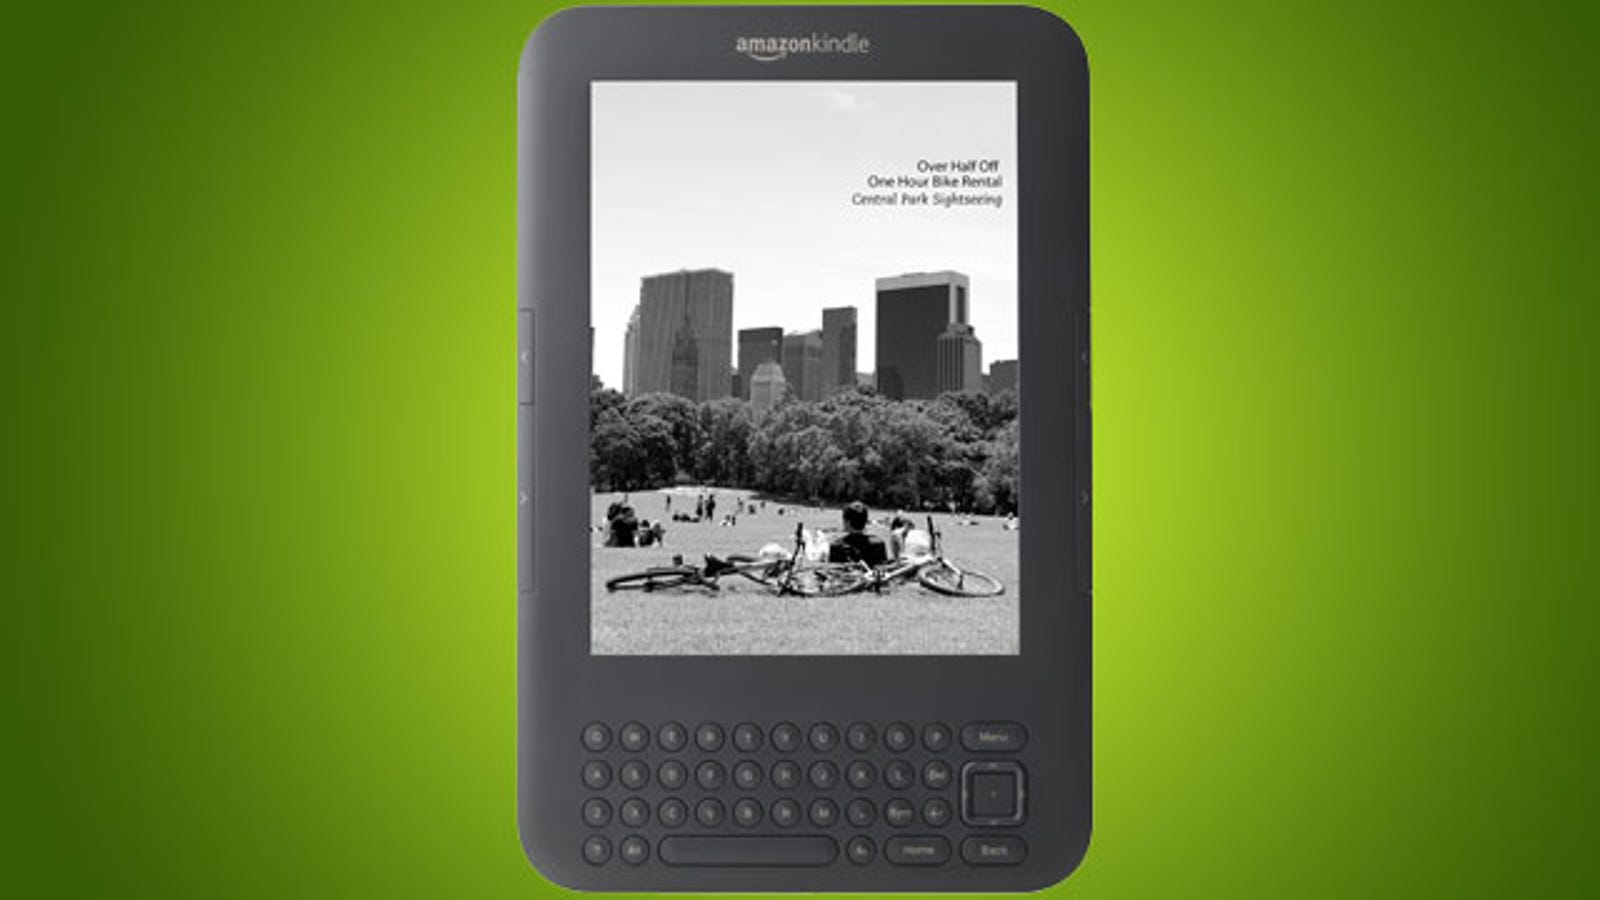 AmazonLocal Deals Coming Soon to Your Kindle with Special Offers